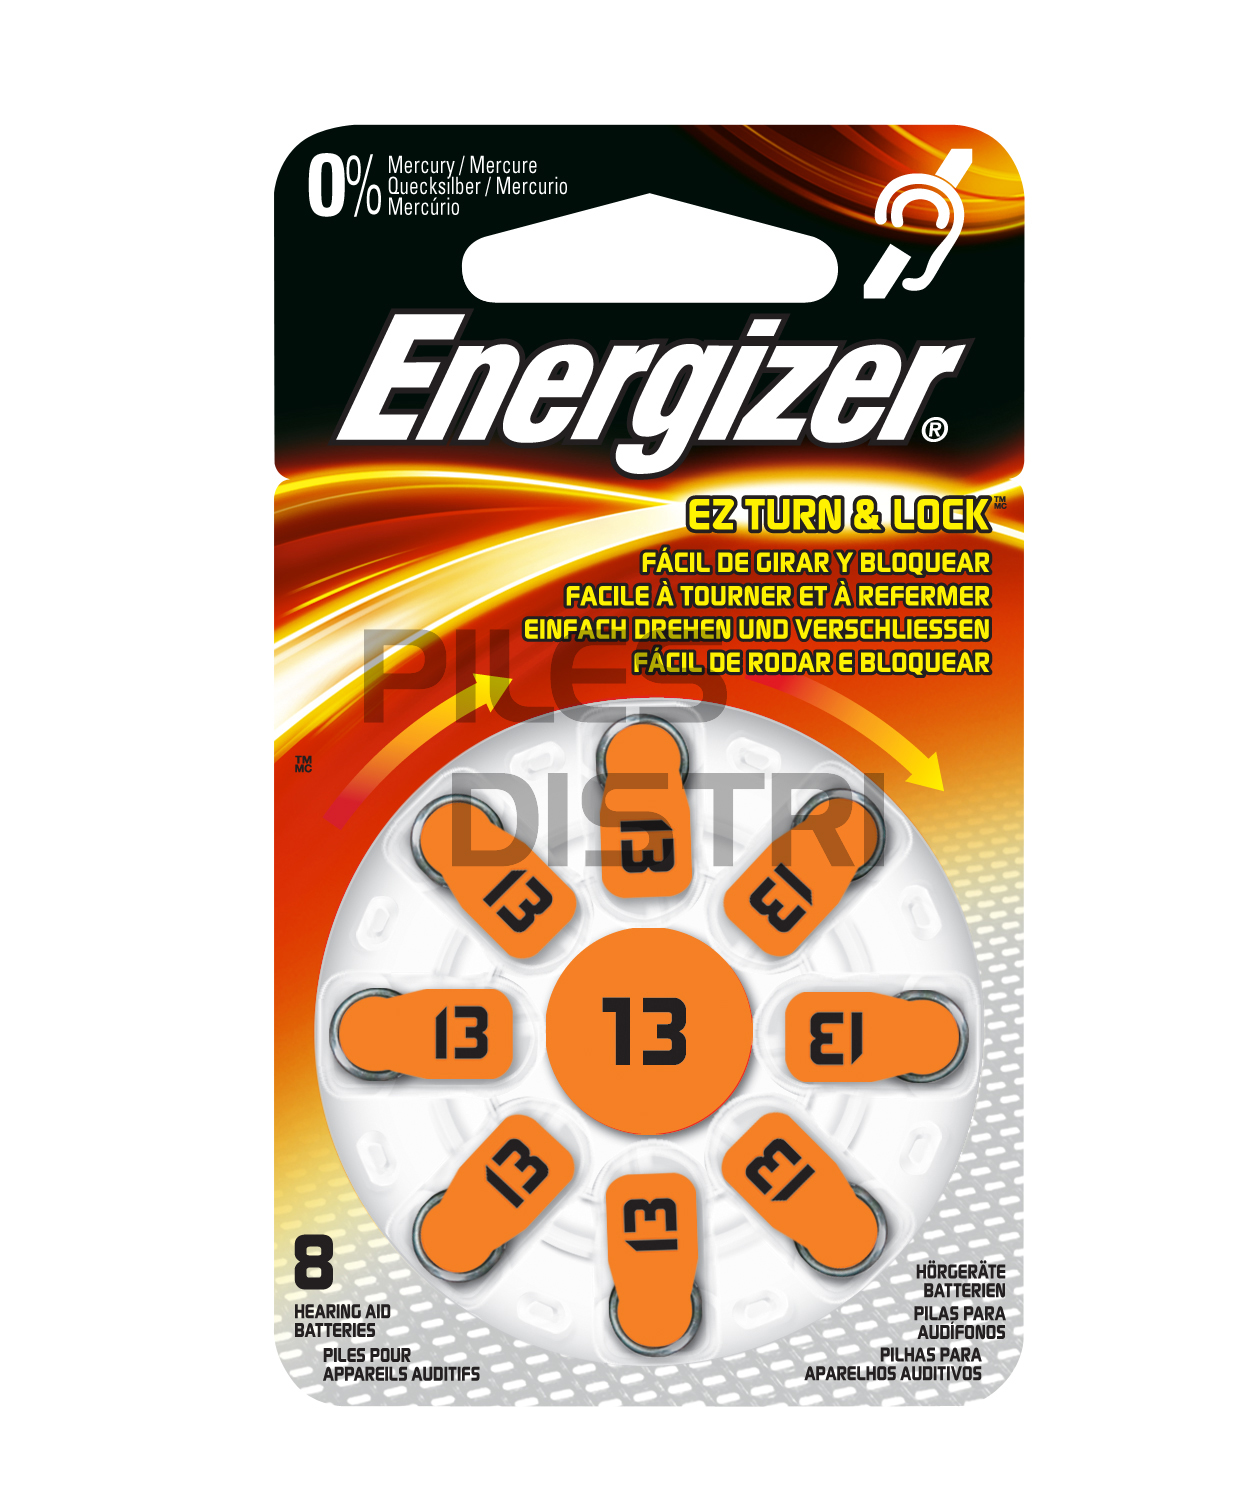 Pile auditive 13 - PR48 - 1.4v Energizer - 0% mercure - par 8